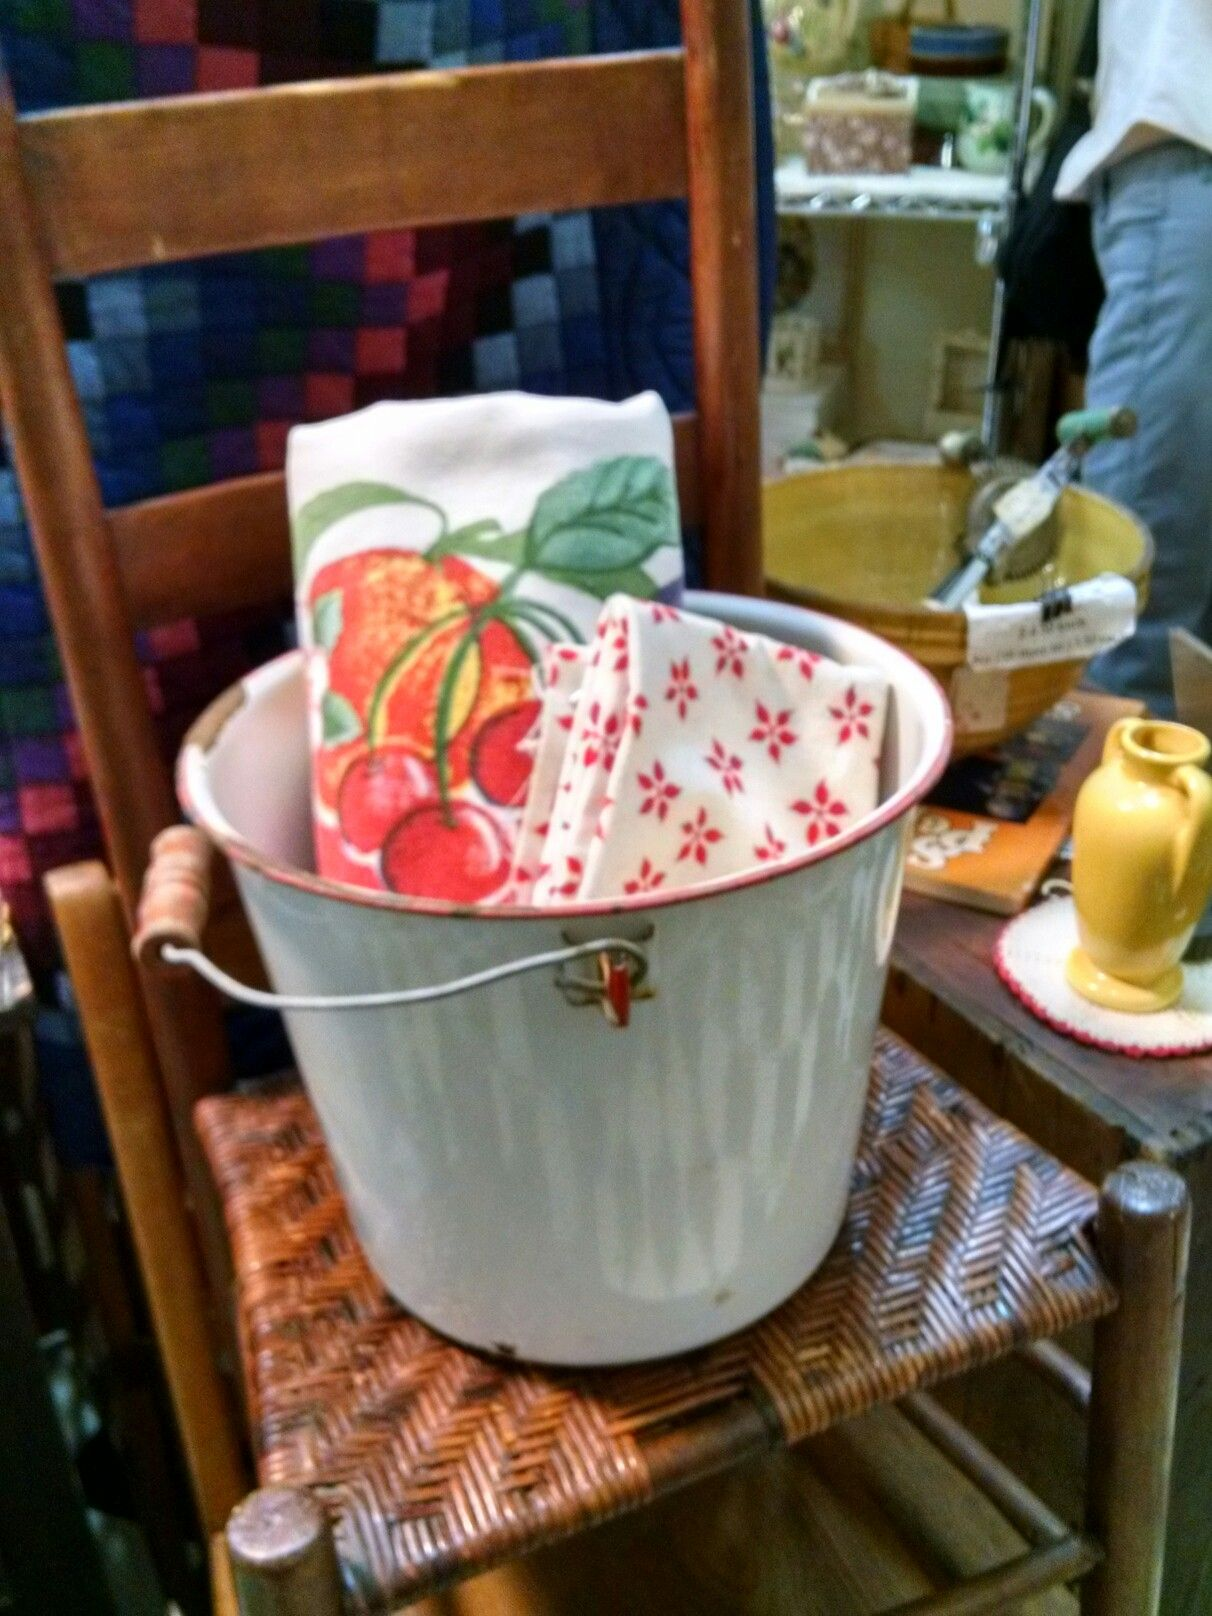 Vintage Tablecloth And Flour Sack Material In Enamel Bucket. LMU, Little  Mountain Sc